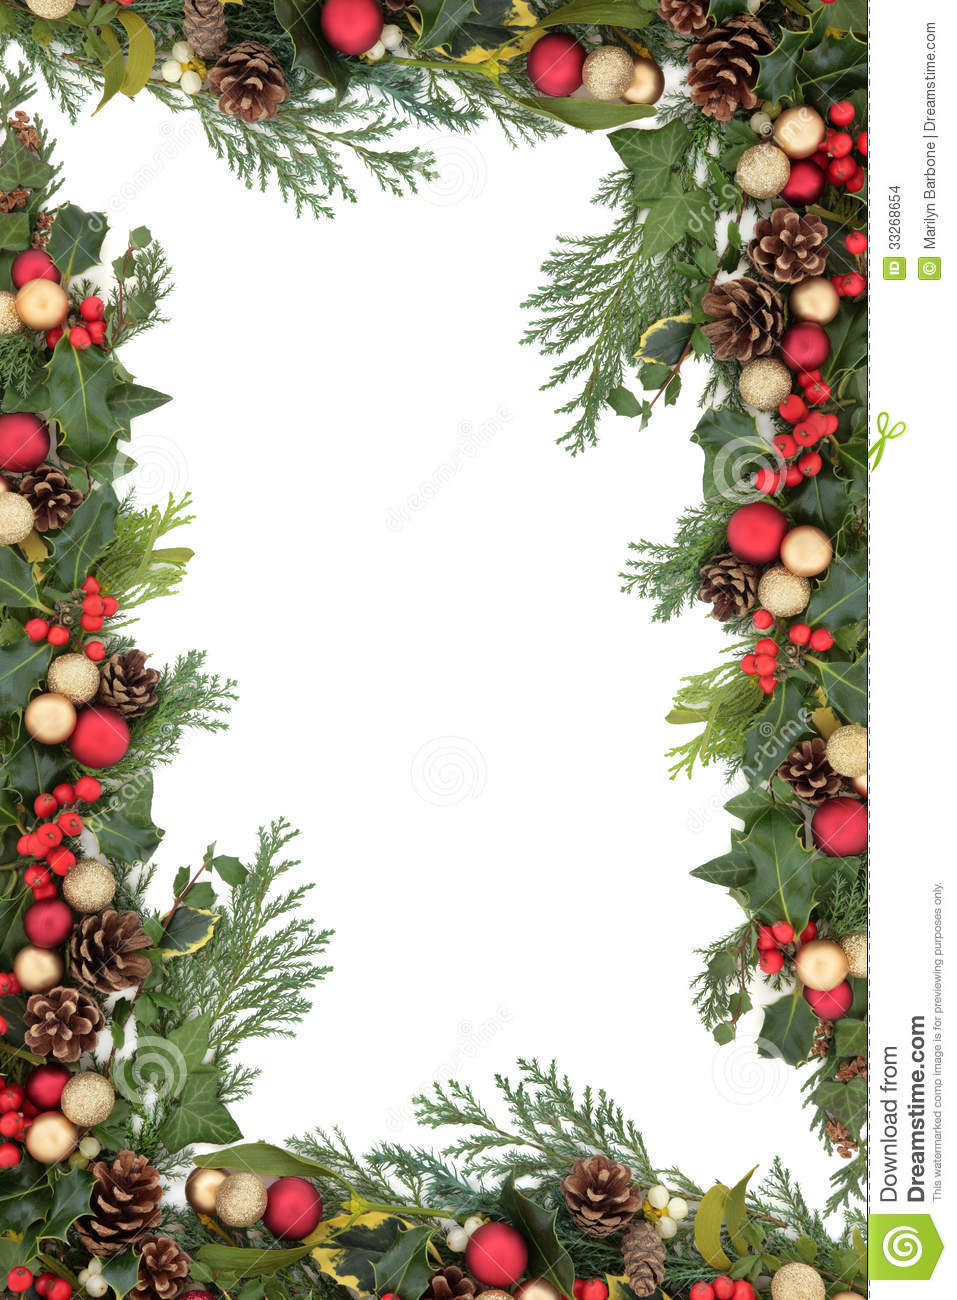 Christmas Decorations Borders